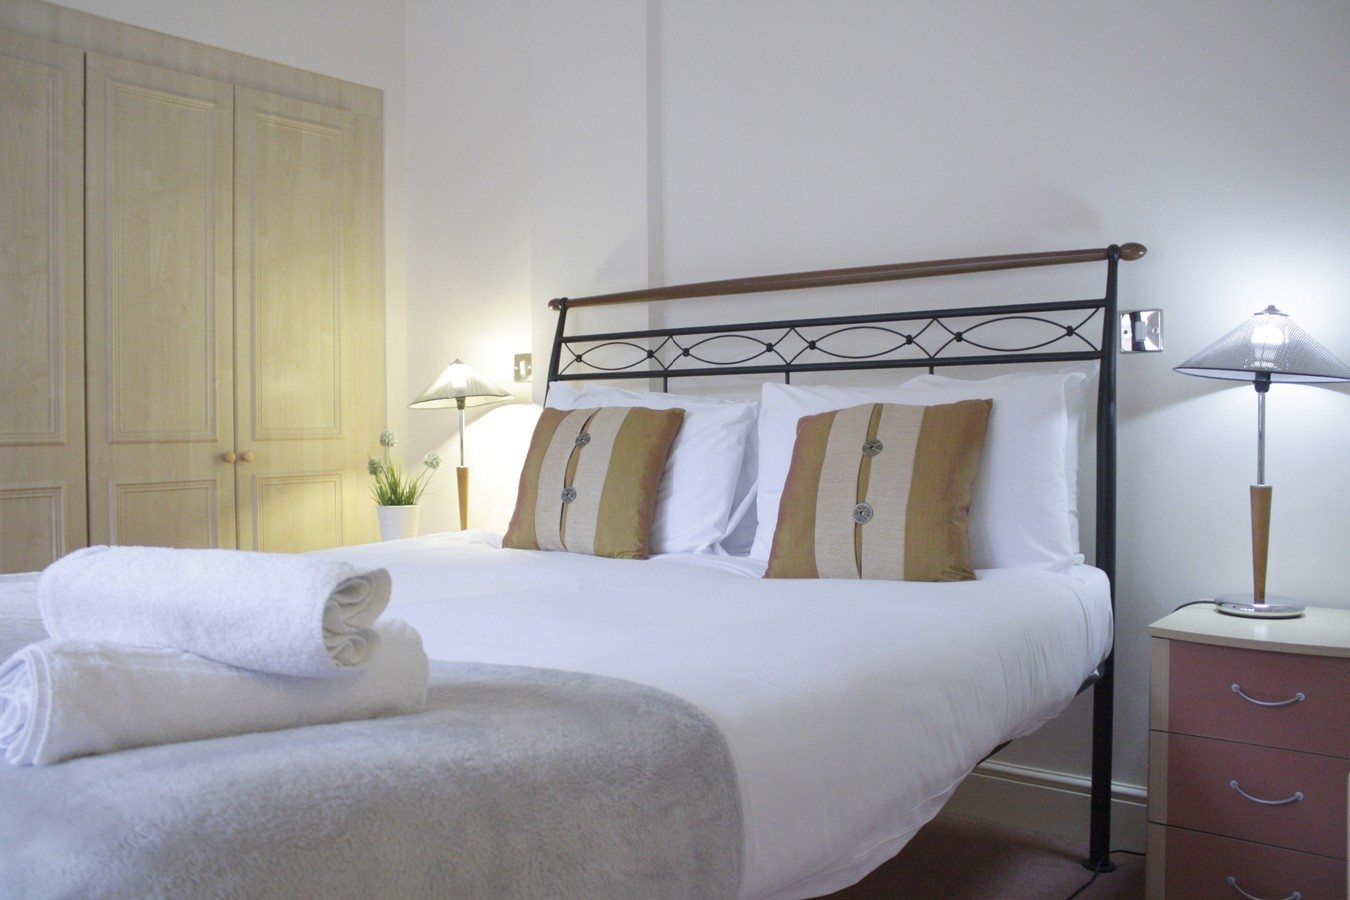 Bedroom-of-Astral-House-Serviced-Apartments-Liverpool-Street---Corporate-Accommodation-in-the-City-of-London